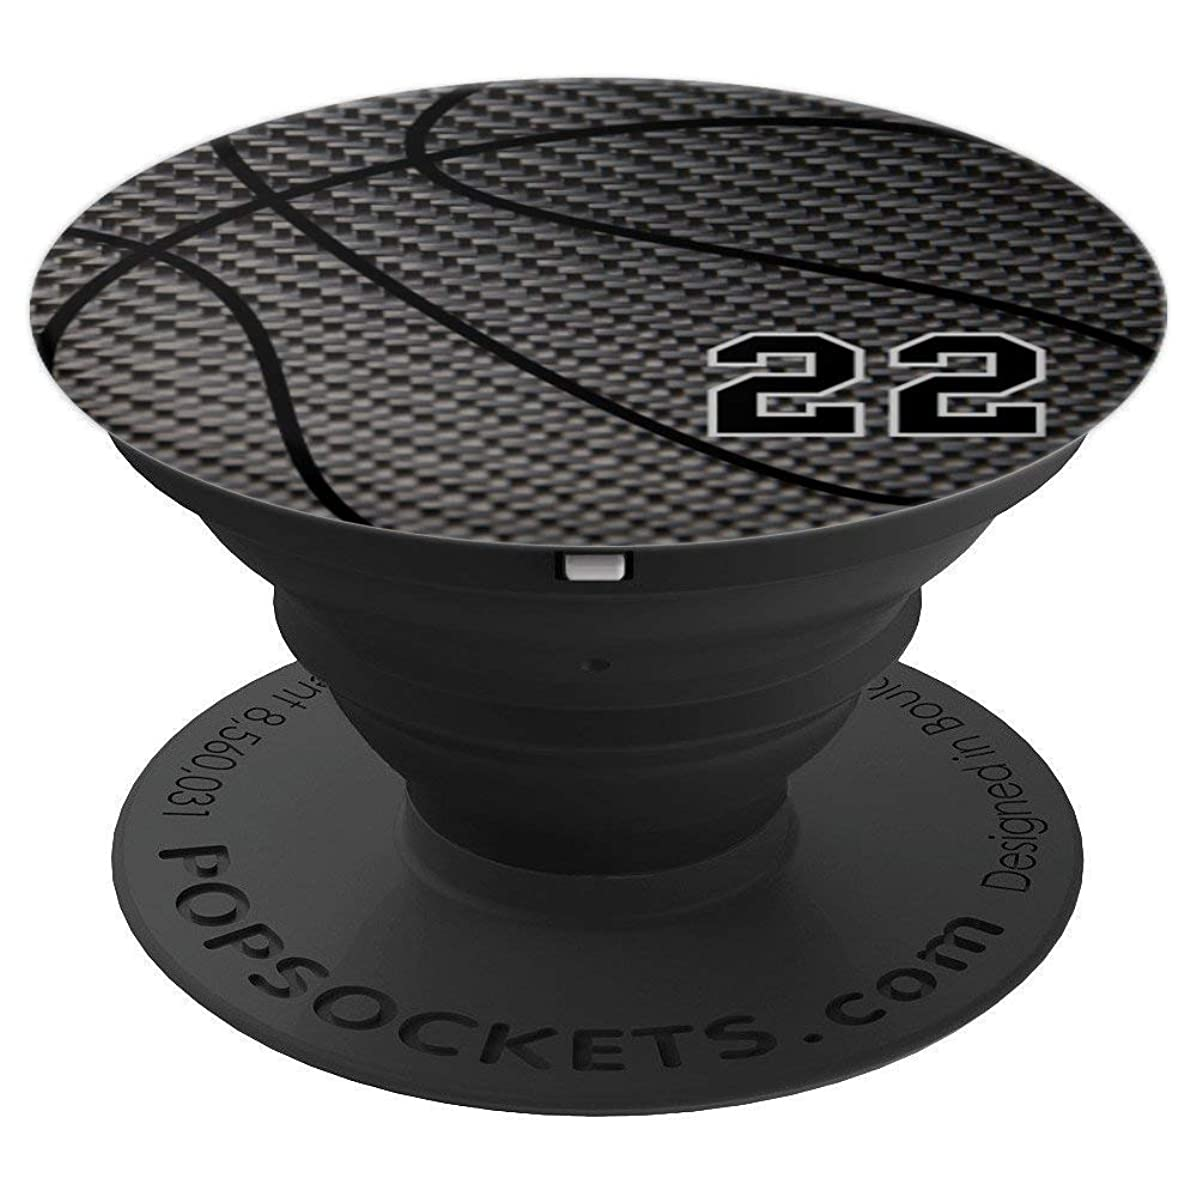 Basketball number 22 black phone stand for men - PopSockets Grip and Stand for Phones and Tablets